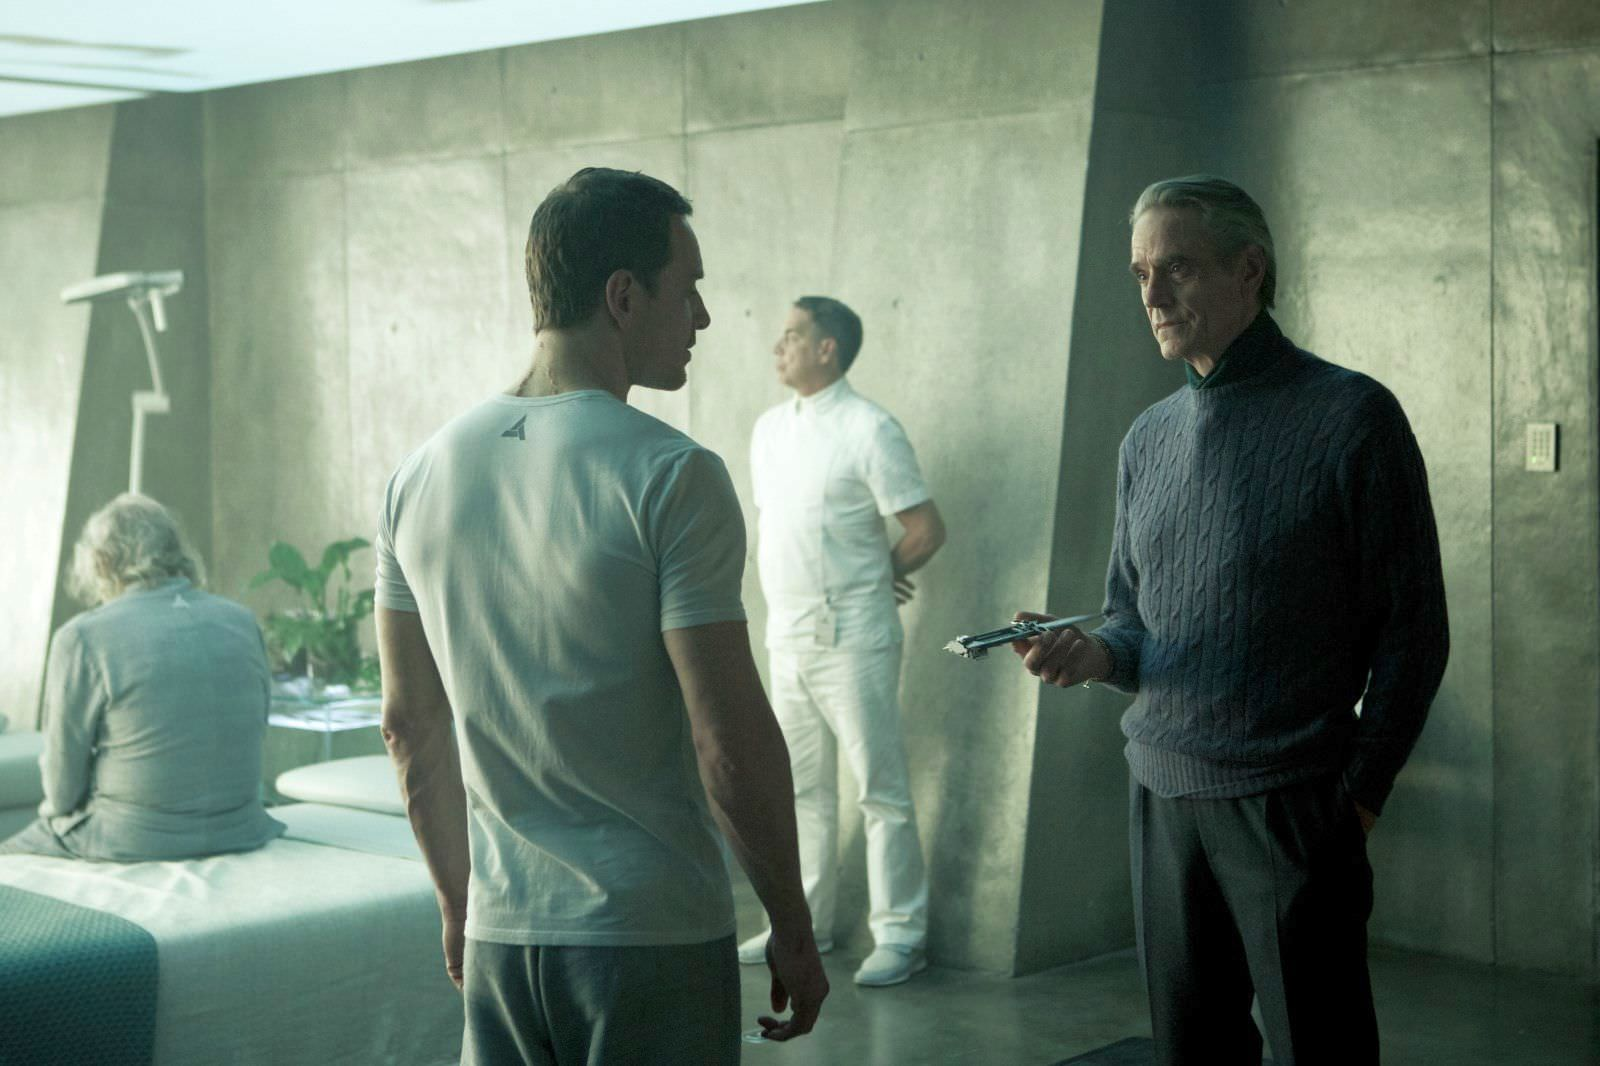 Michael Fassbender and Jeremy Irons in Assassin's Creed